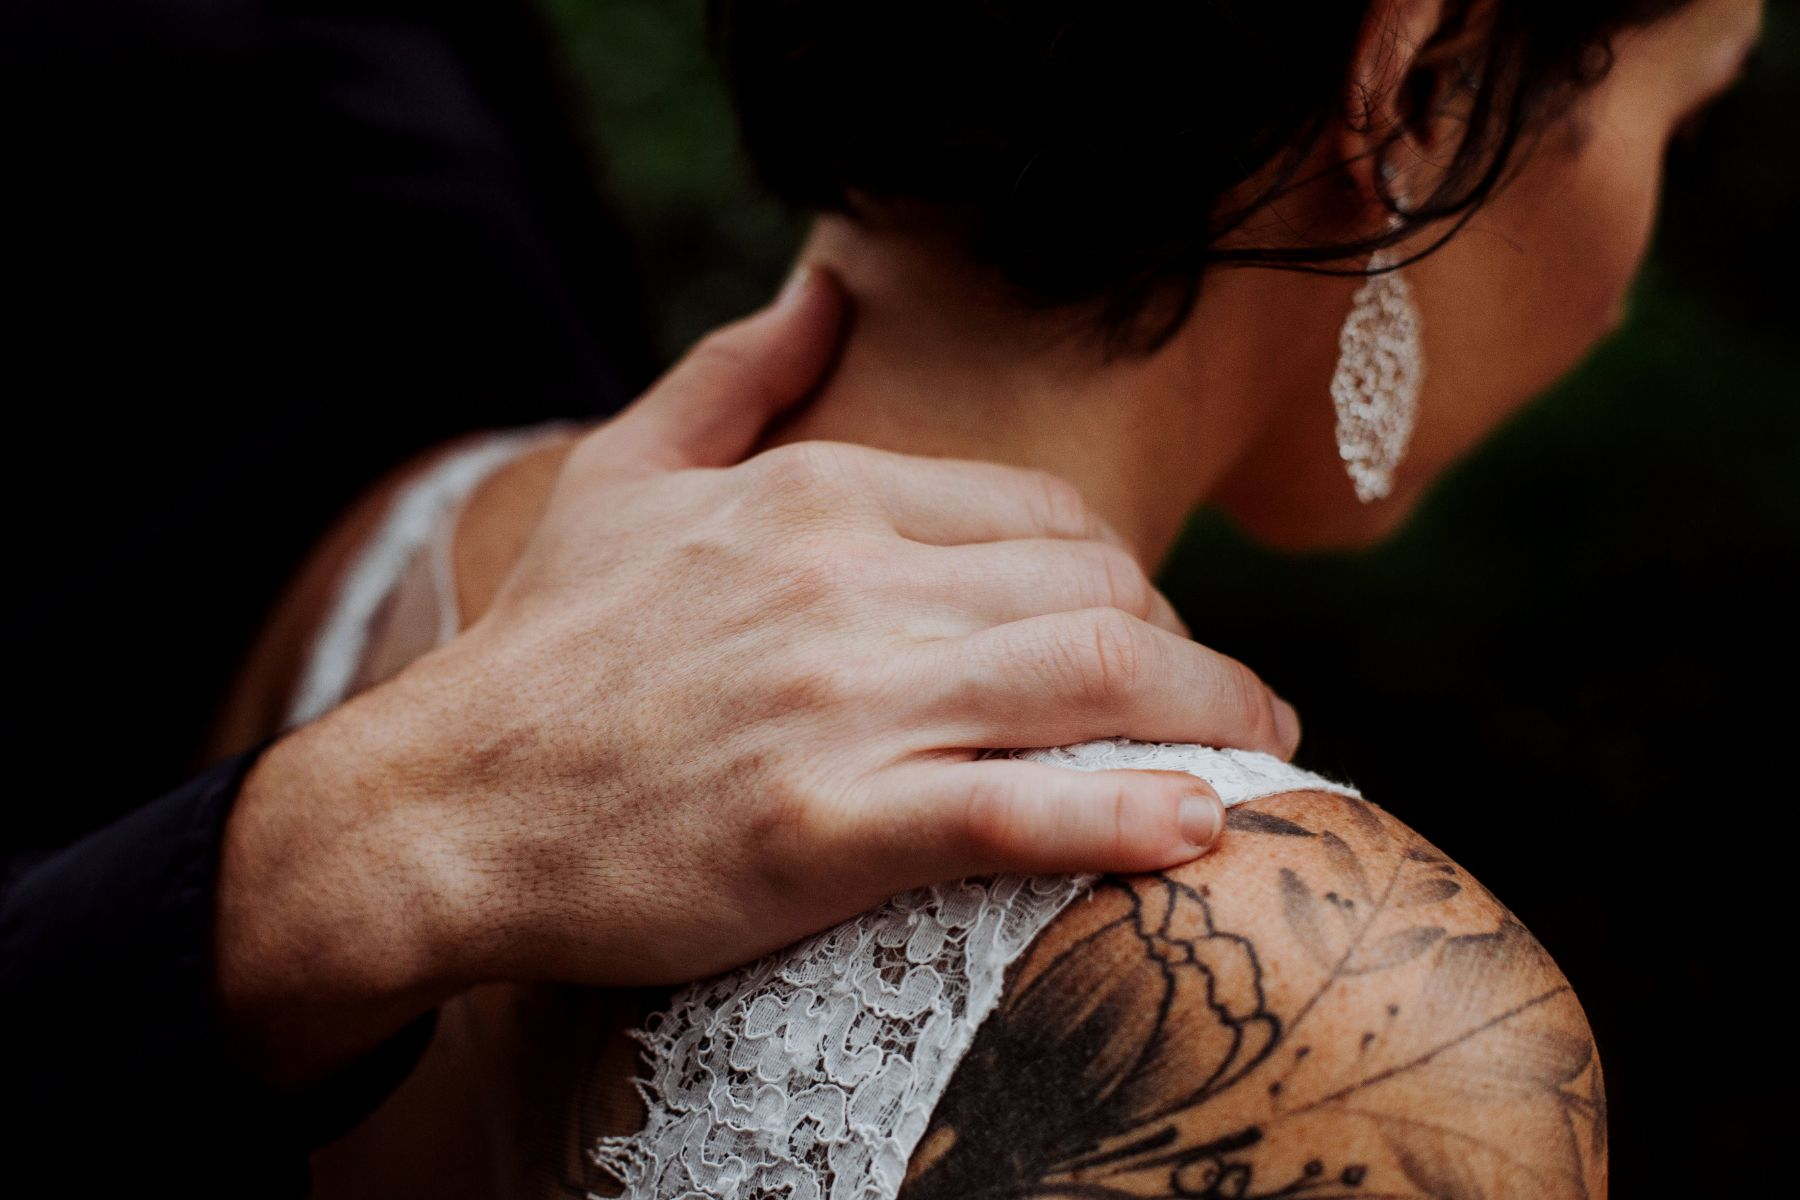 Wedding portfolio image of alternative bride with tattoos walking as groom places hand gently on her shoulder